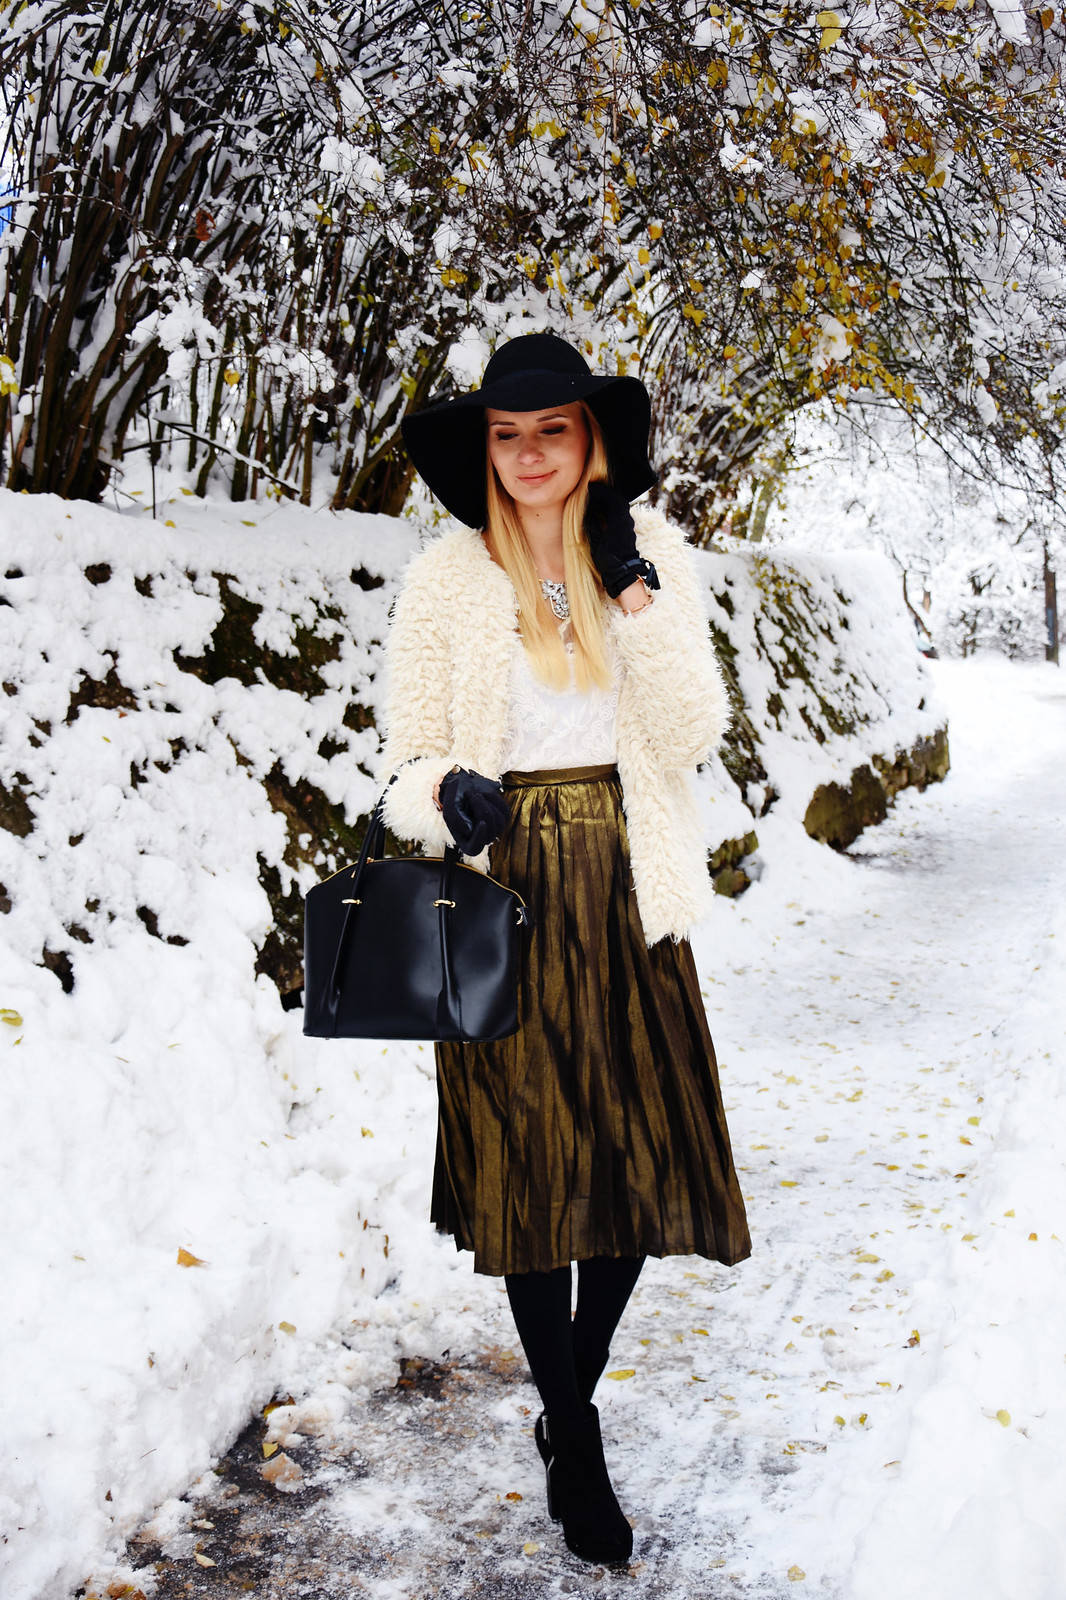 Snow outfit ideas